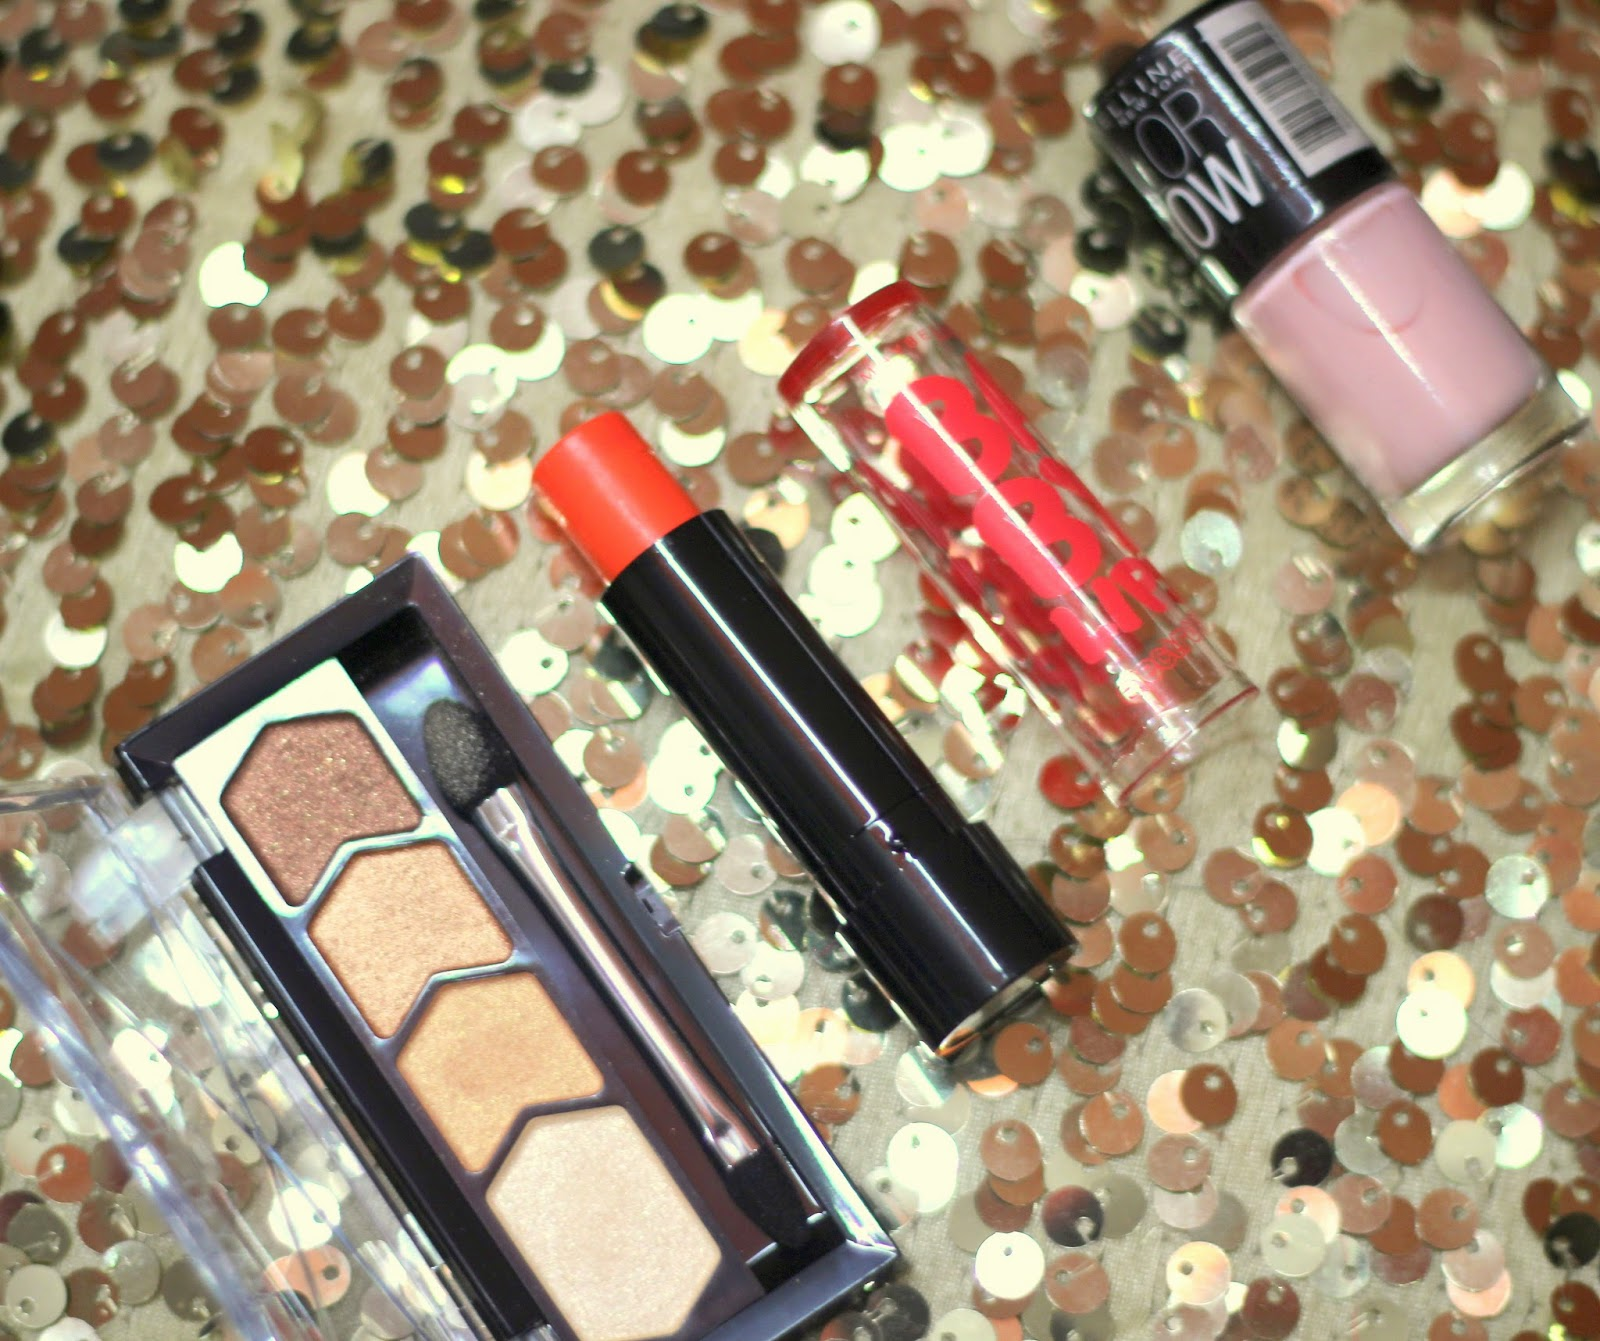 SSU Beauty Buys | Maybelline Diamond Glow Eye Shadow, Electro Pop Oh Orange and Color Show Nail Polish in Constant Candy